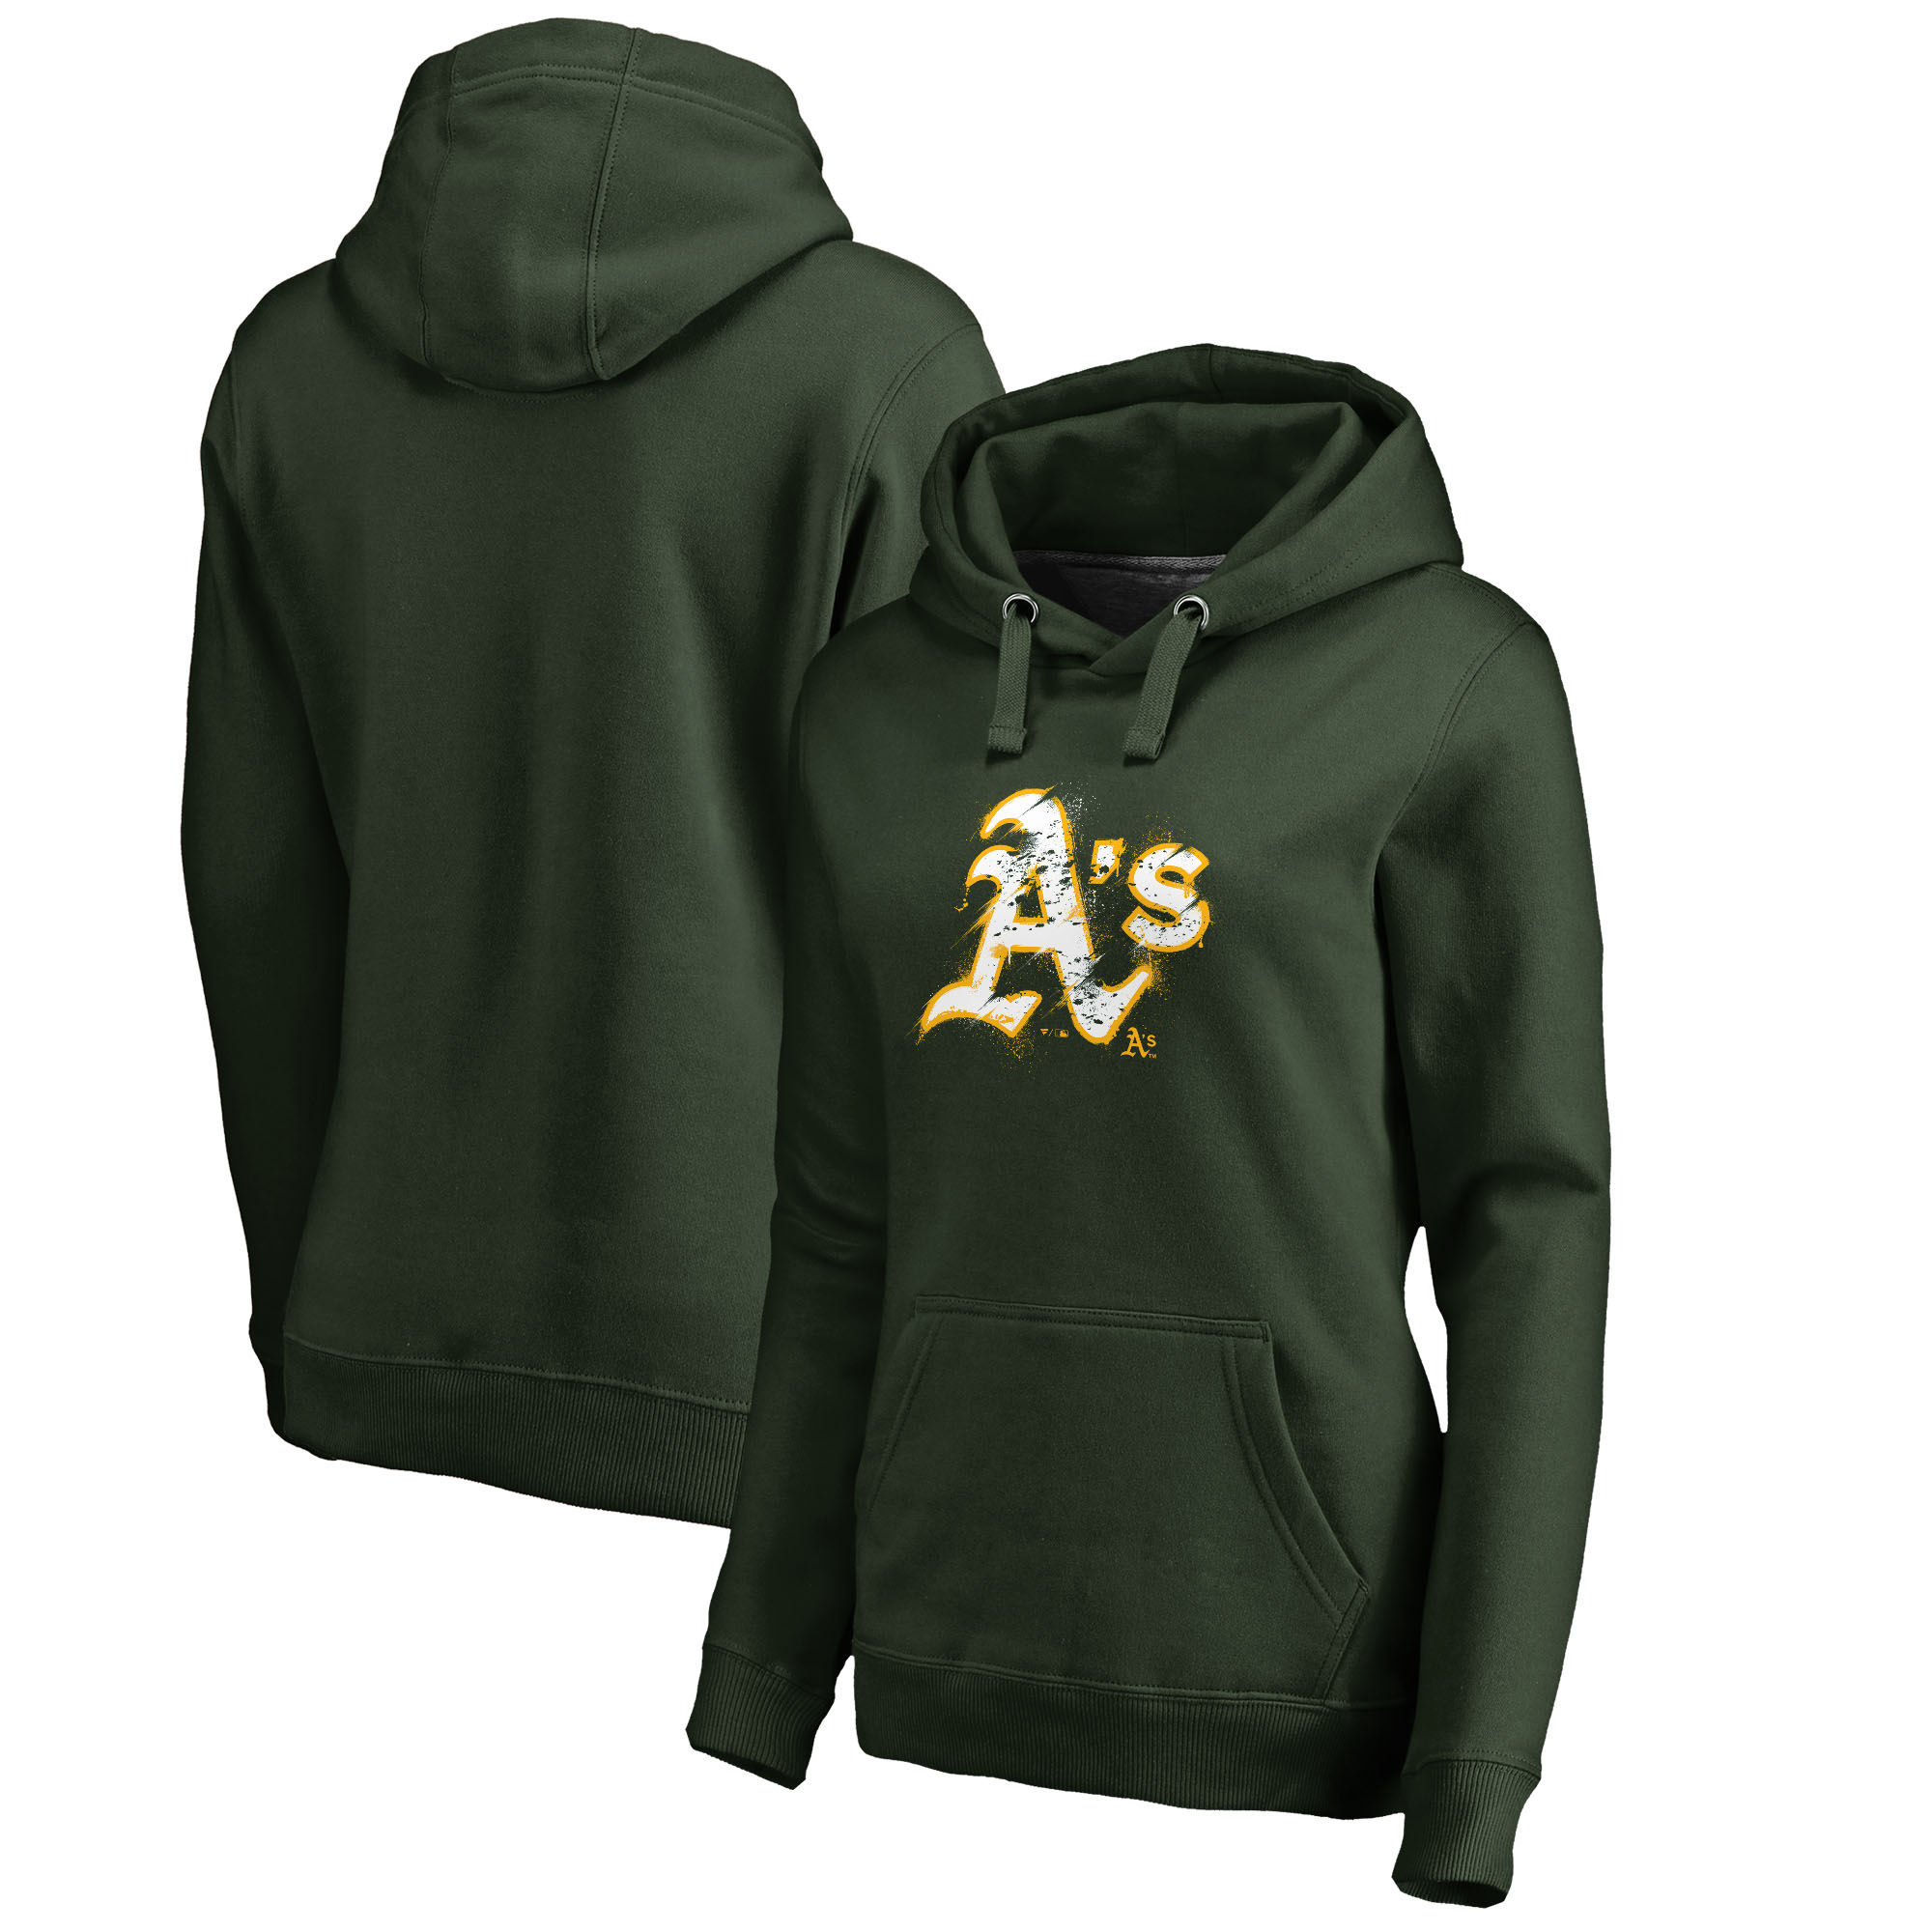 Oakland Athletics Fanatics Branded Women's Splatter Logo Pullover Hoodie - Green